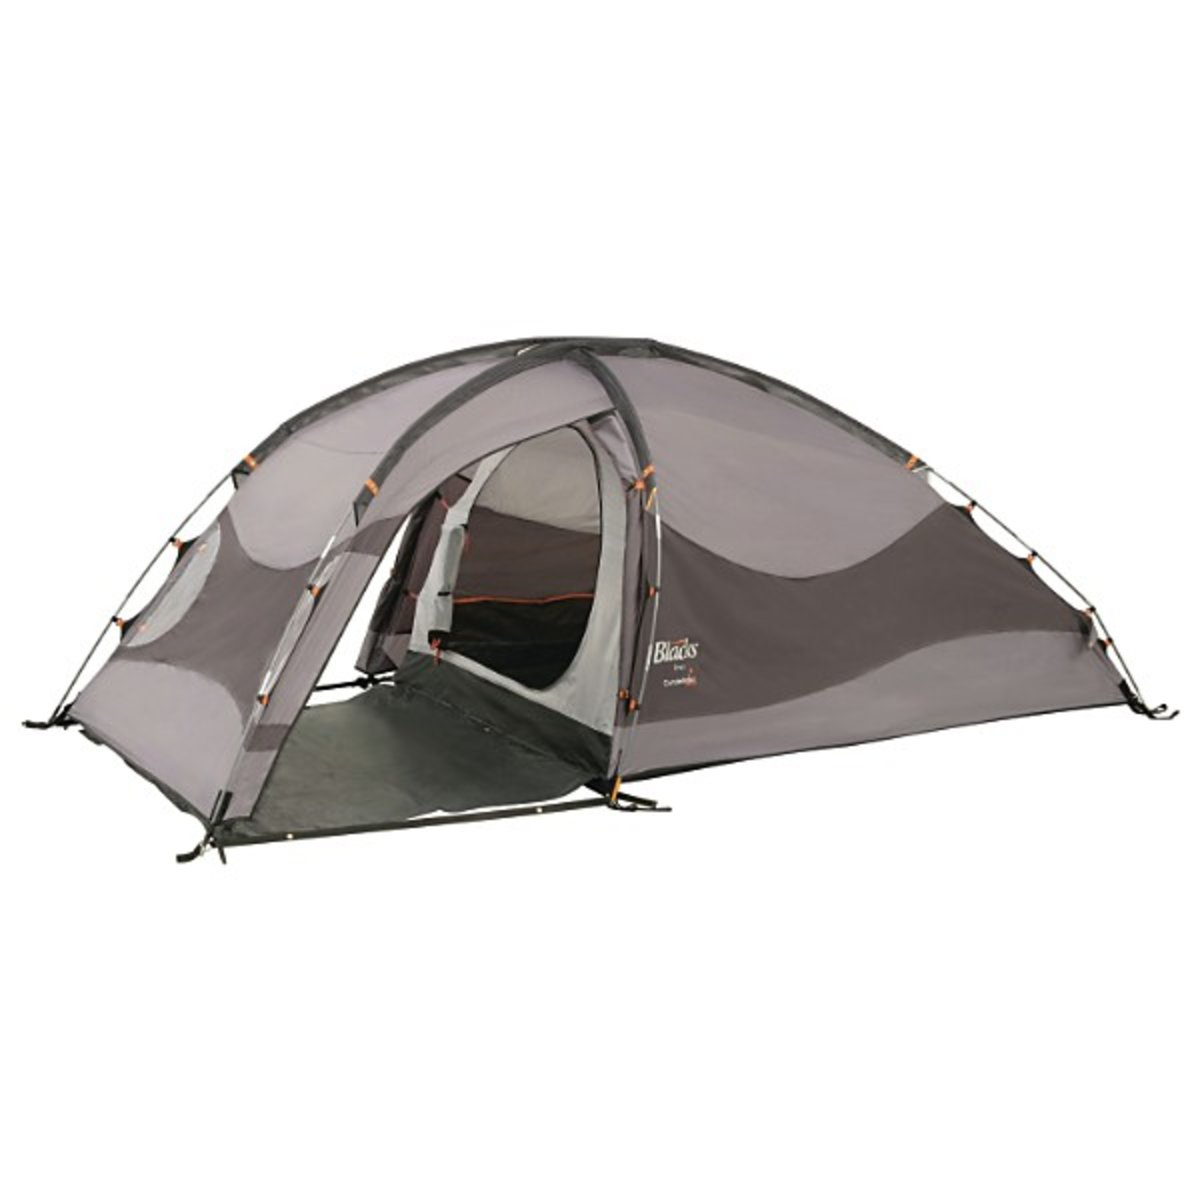 sc 1 st  Pocket-lint & Blacks Crux Constellation II Tent - Pocket-lint